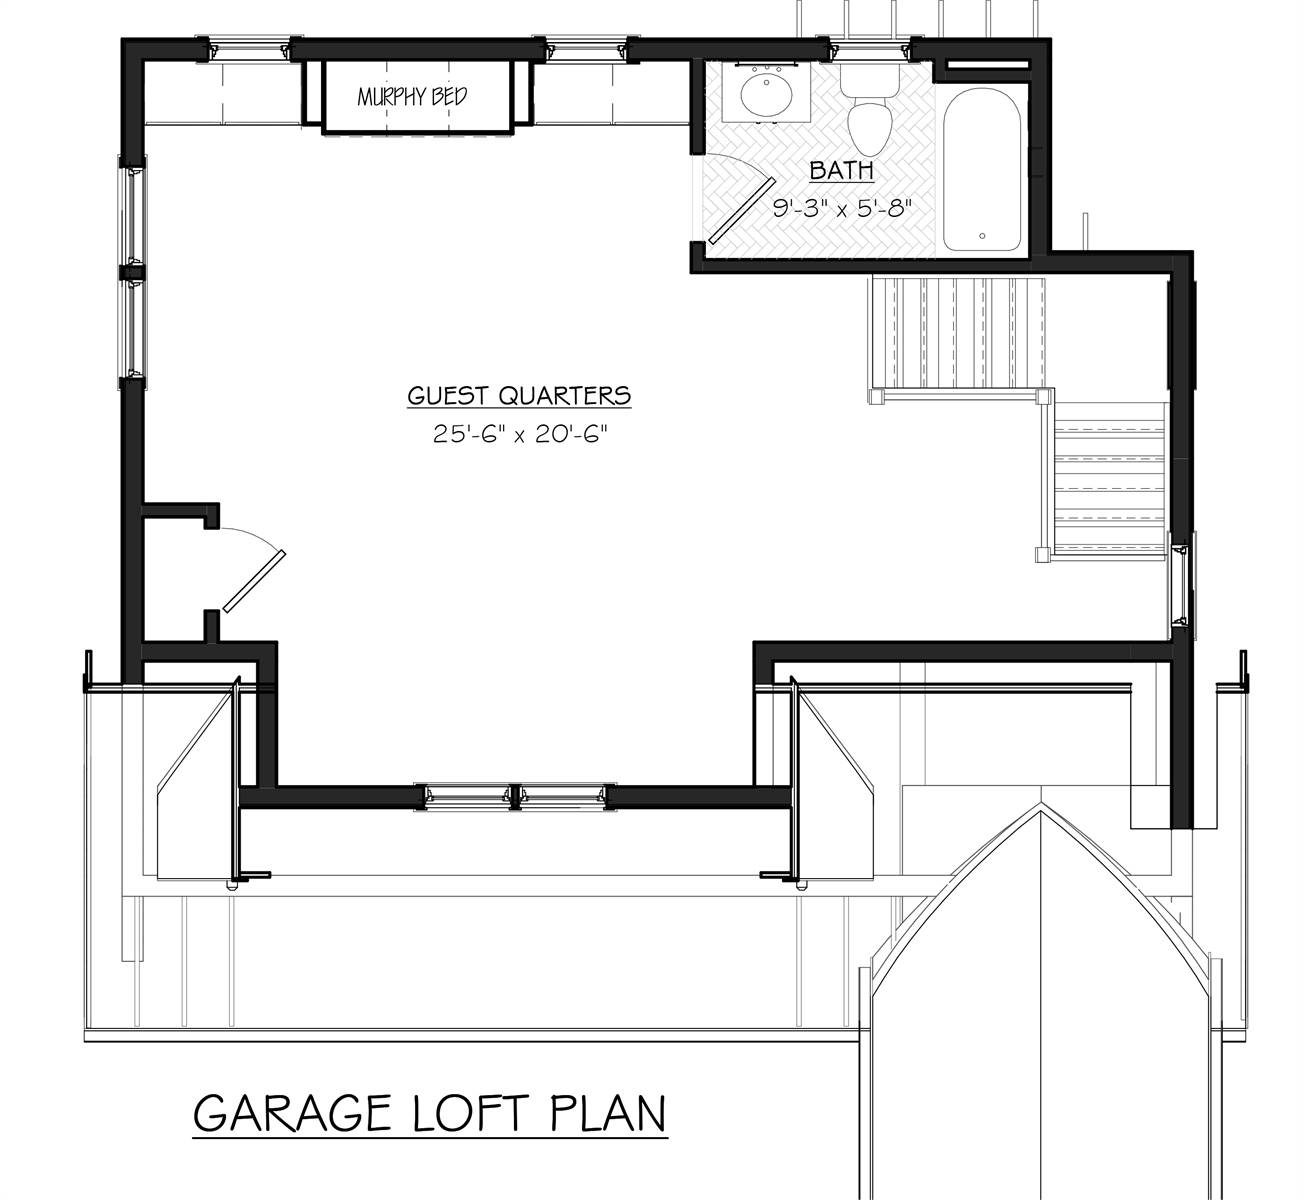 Garage Loft Floor Plan by DFD House Plans